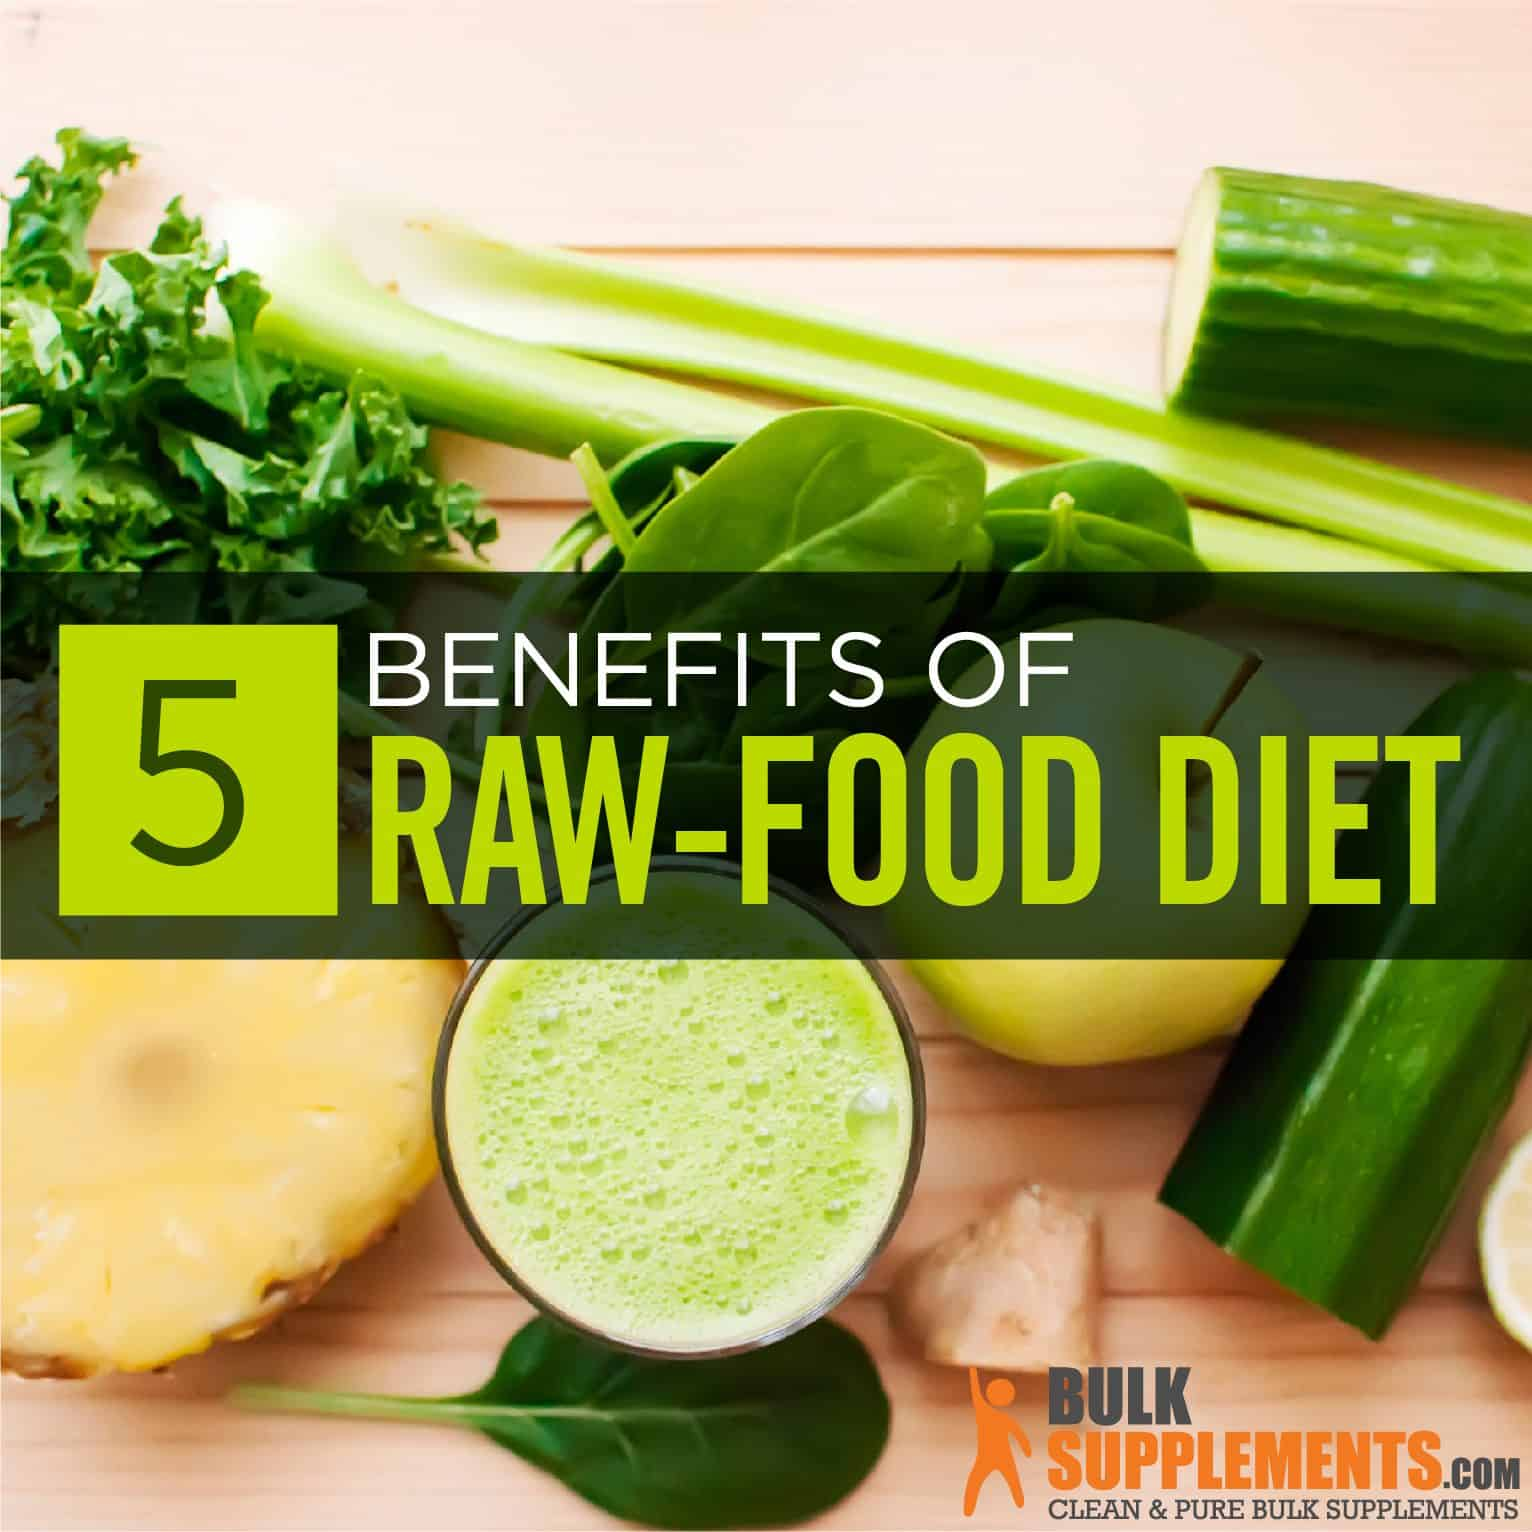 Raw-Food Diet